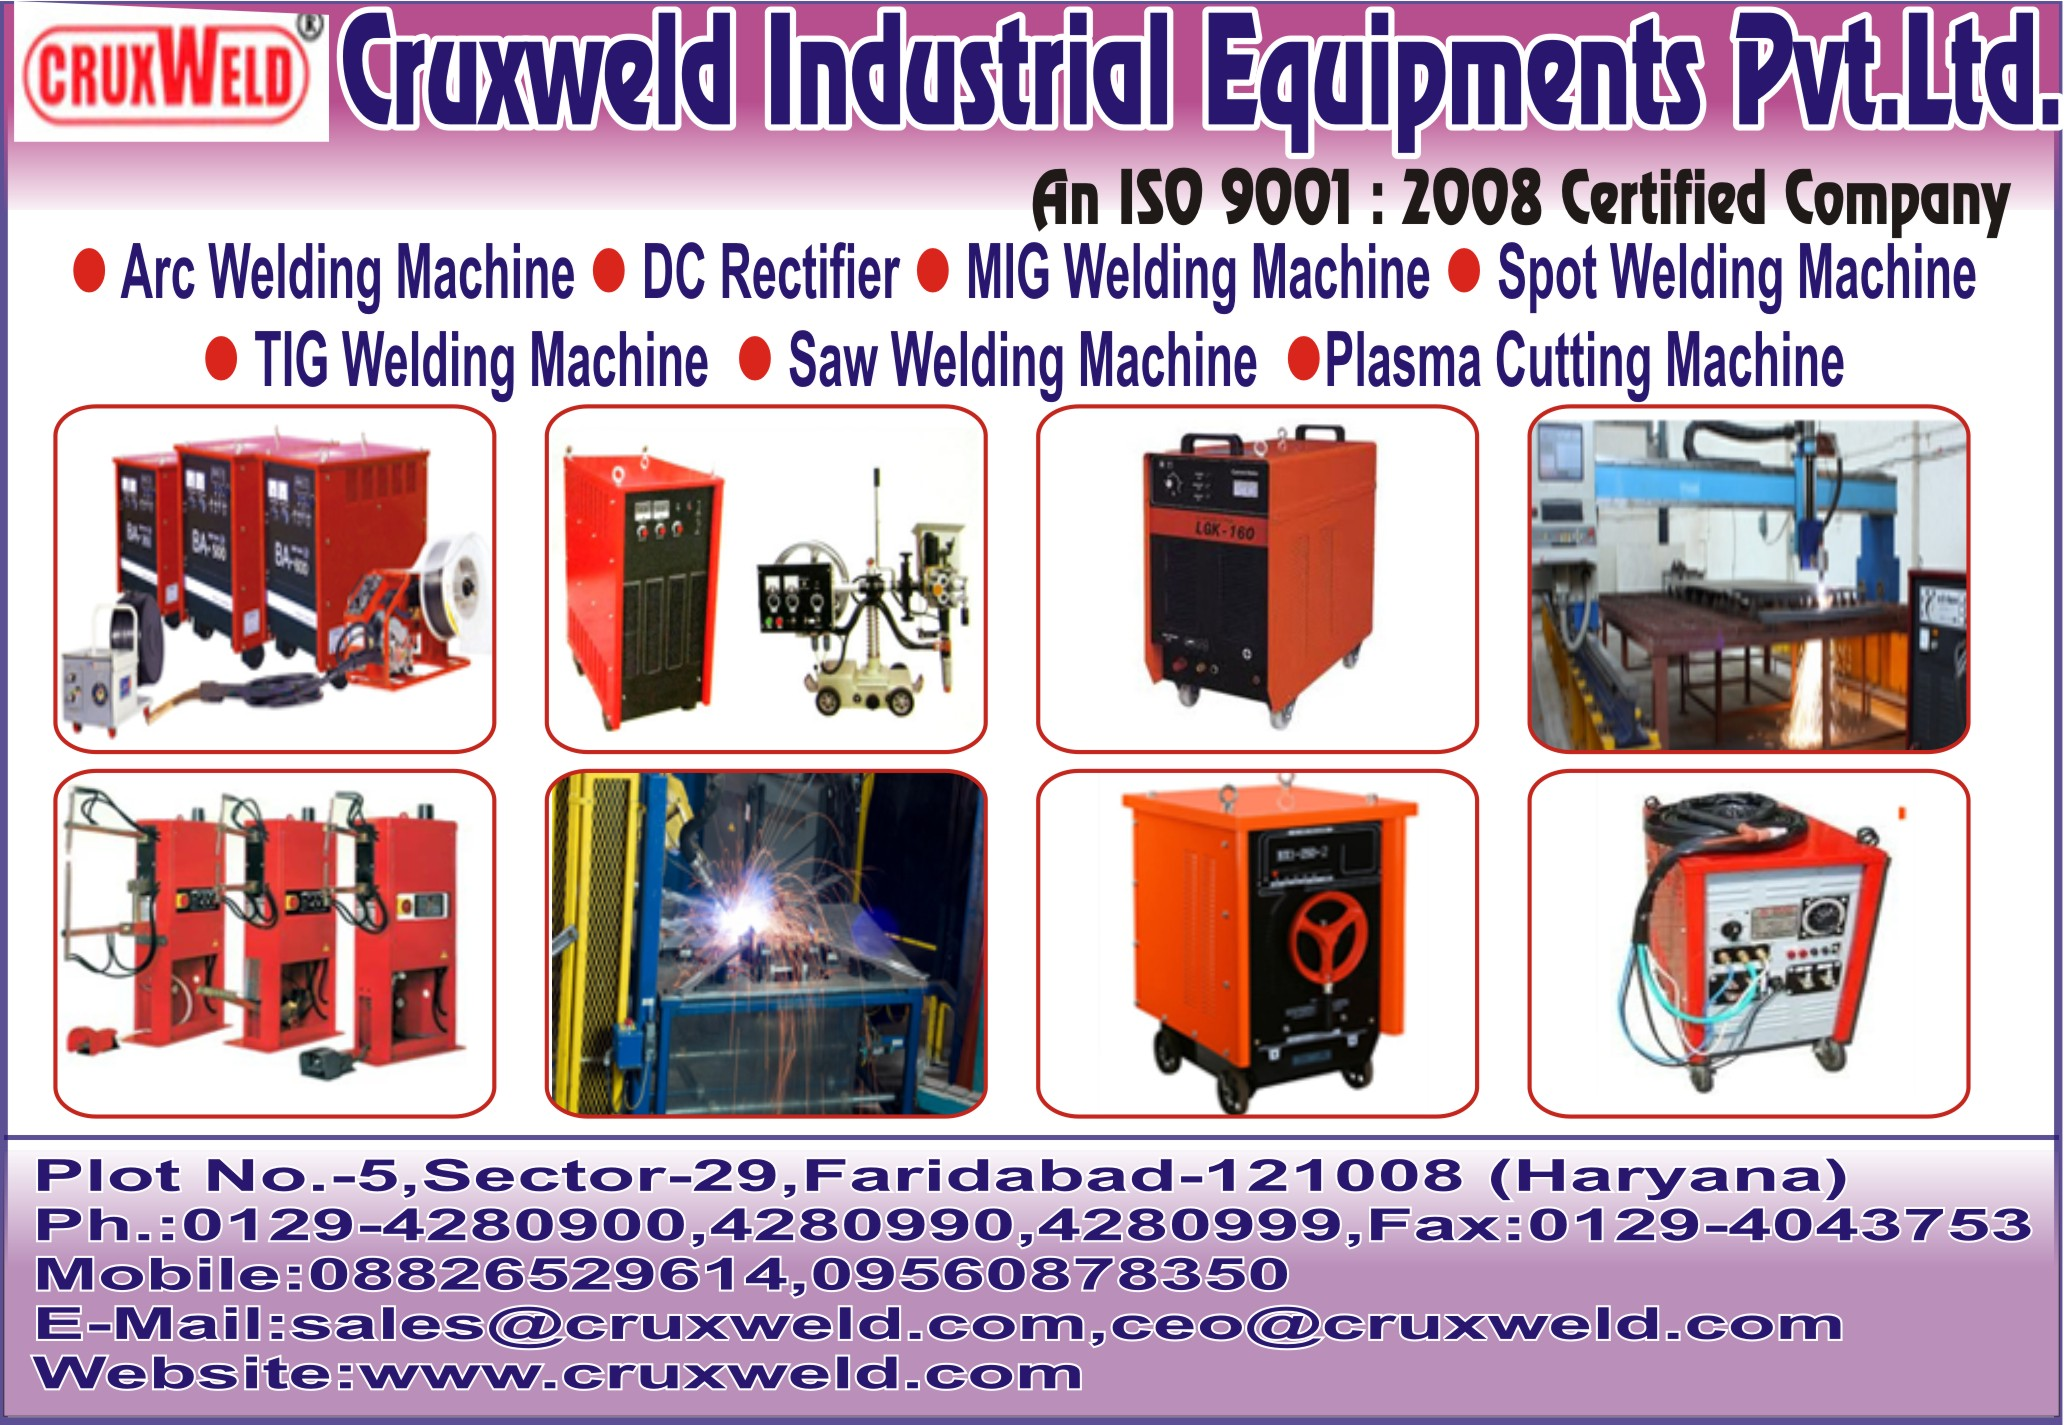 welding machine manufacturers2 welding machine manufacturers